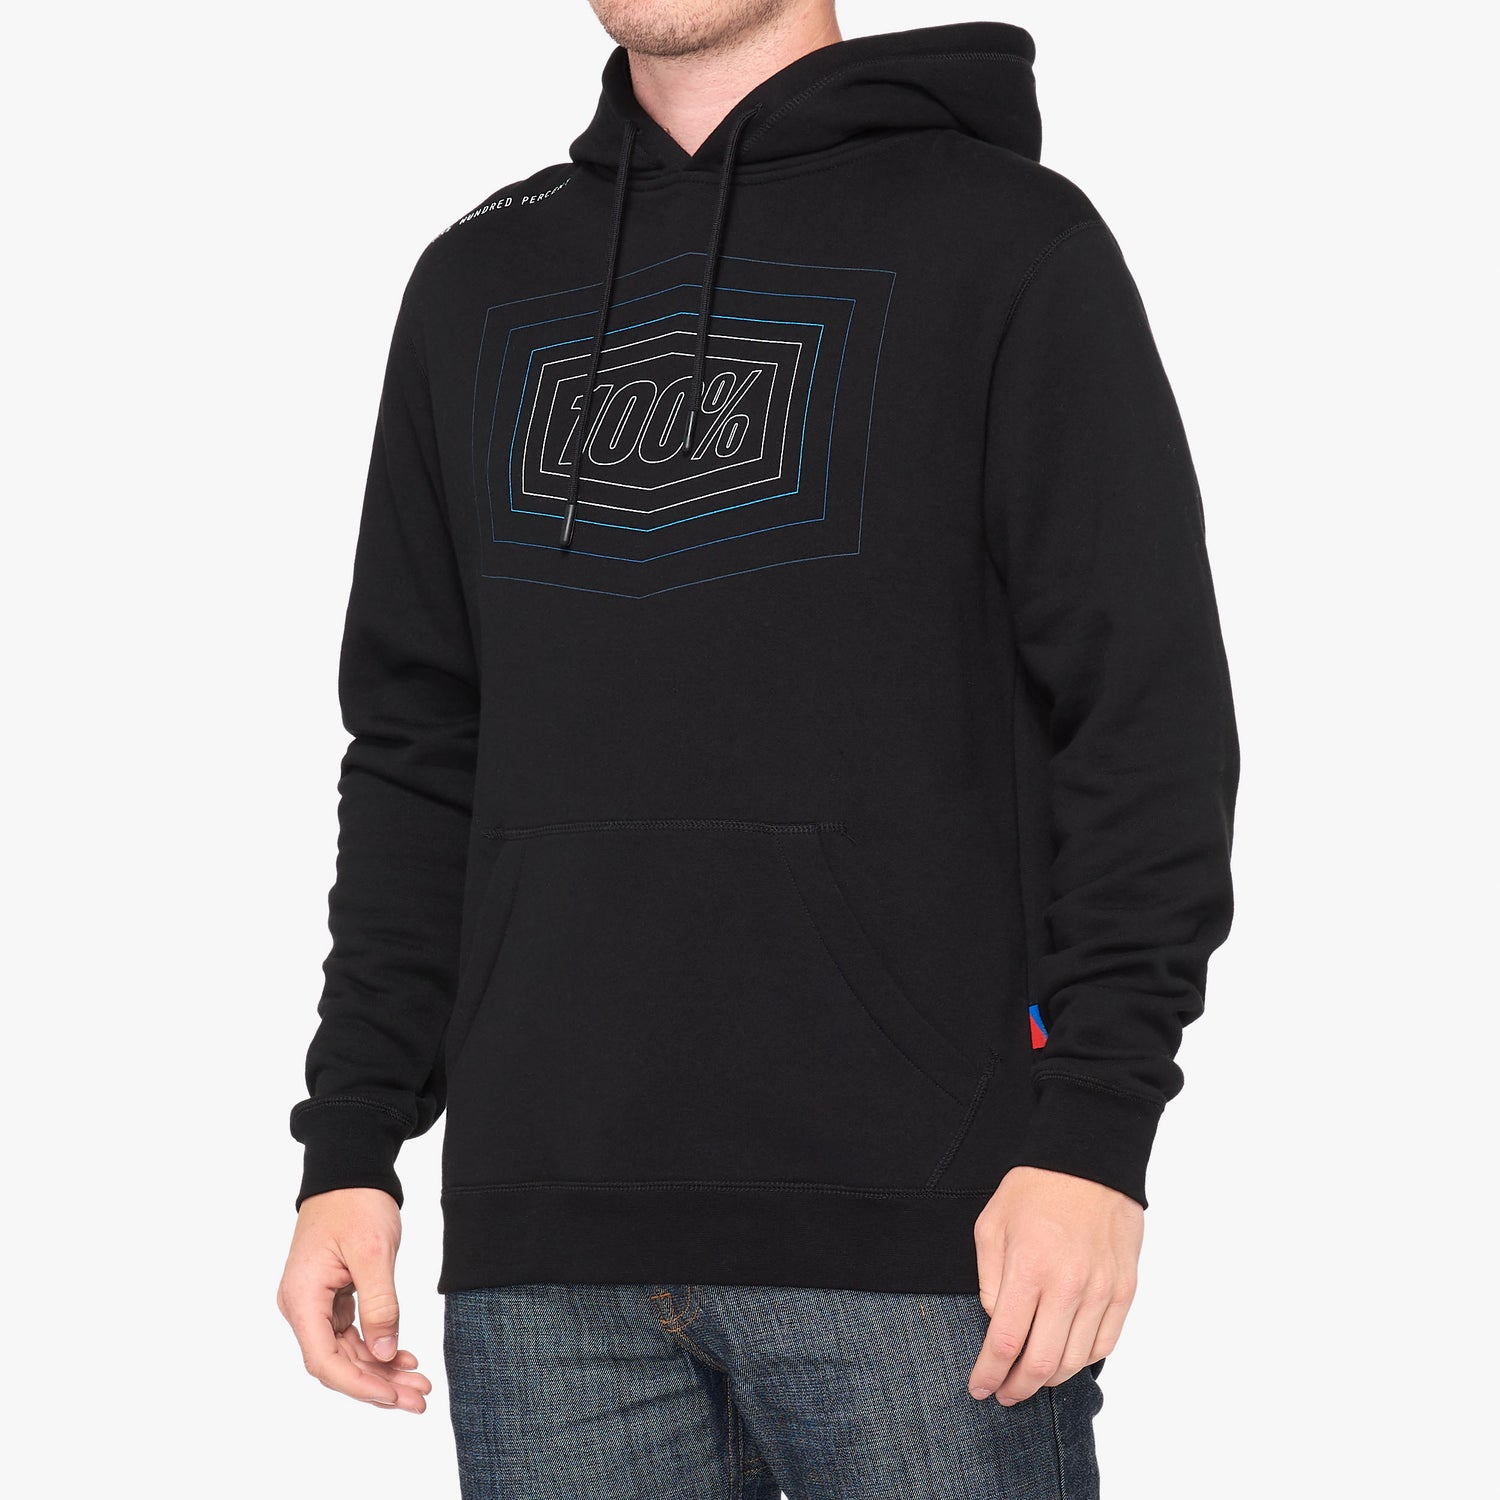 ECHO Hooded Pullover Sweatshirt Black